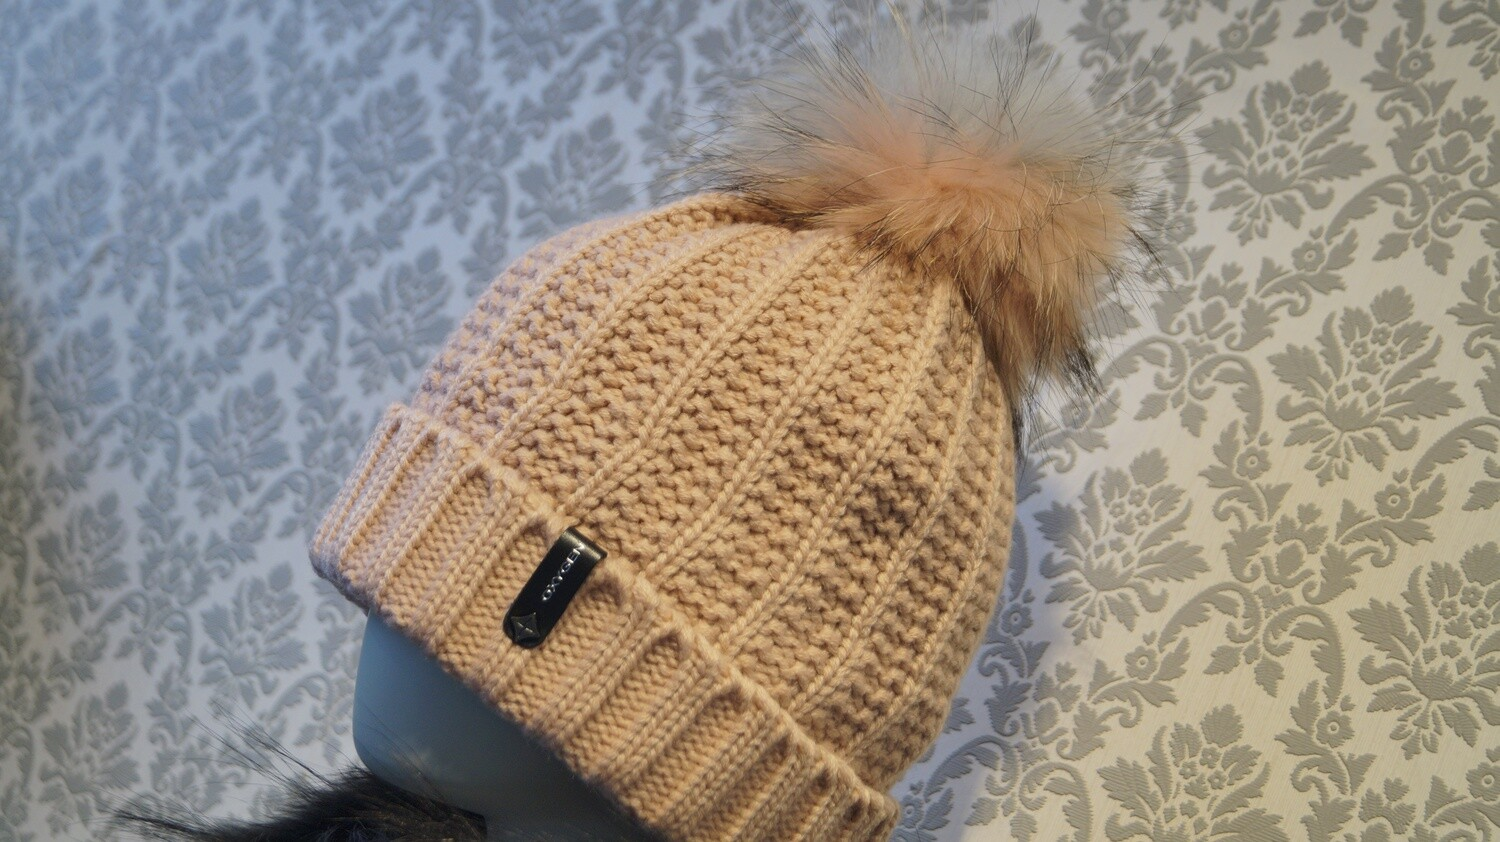 Oxygen Tuque Rose --Oxygen Toque Light pink